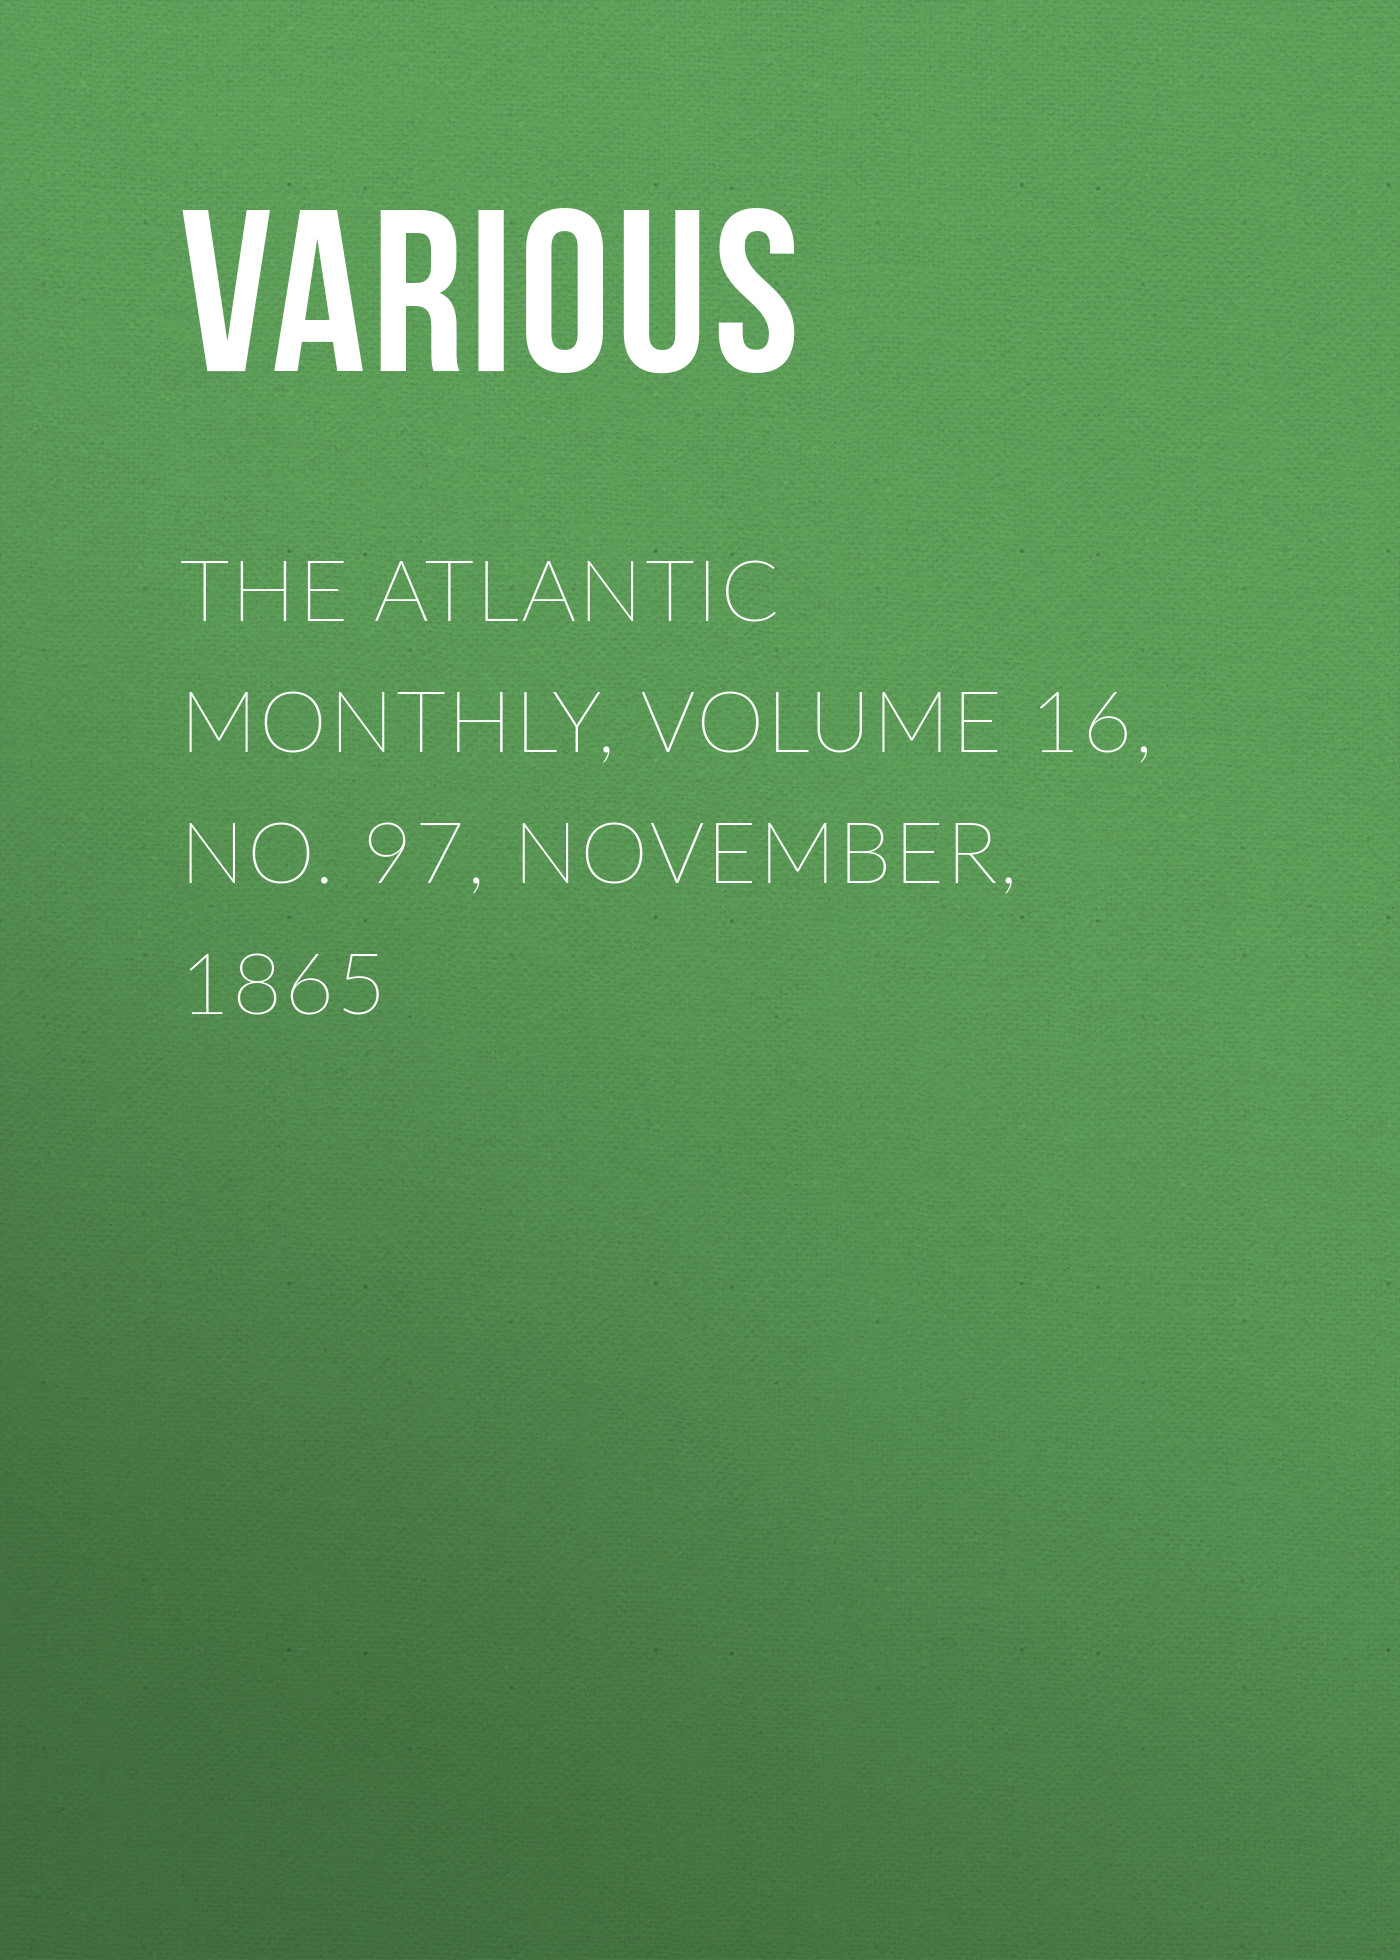 Various The Atlantic Monthly, Volume 16, No. 97, November, 1865 atlantic seagold 95743 65 21